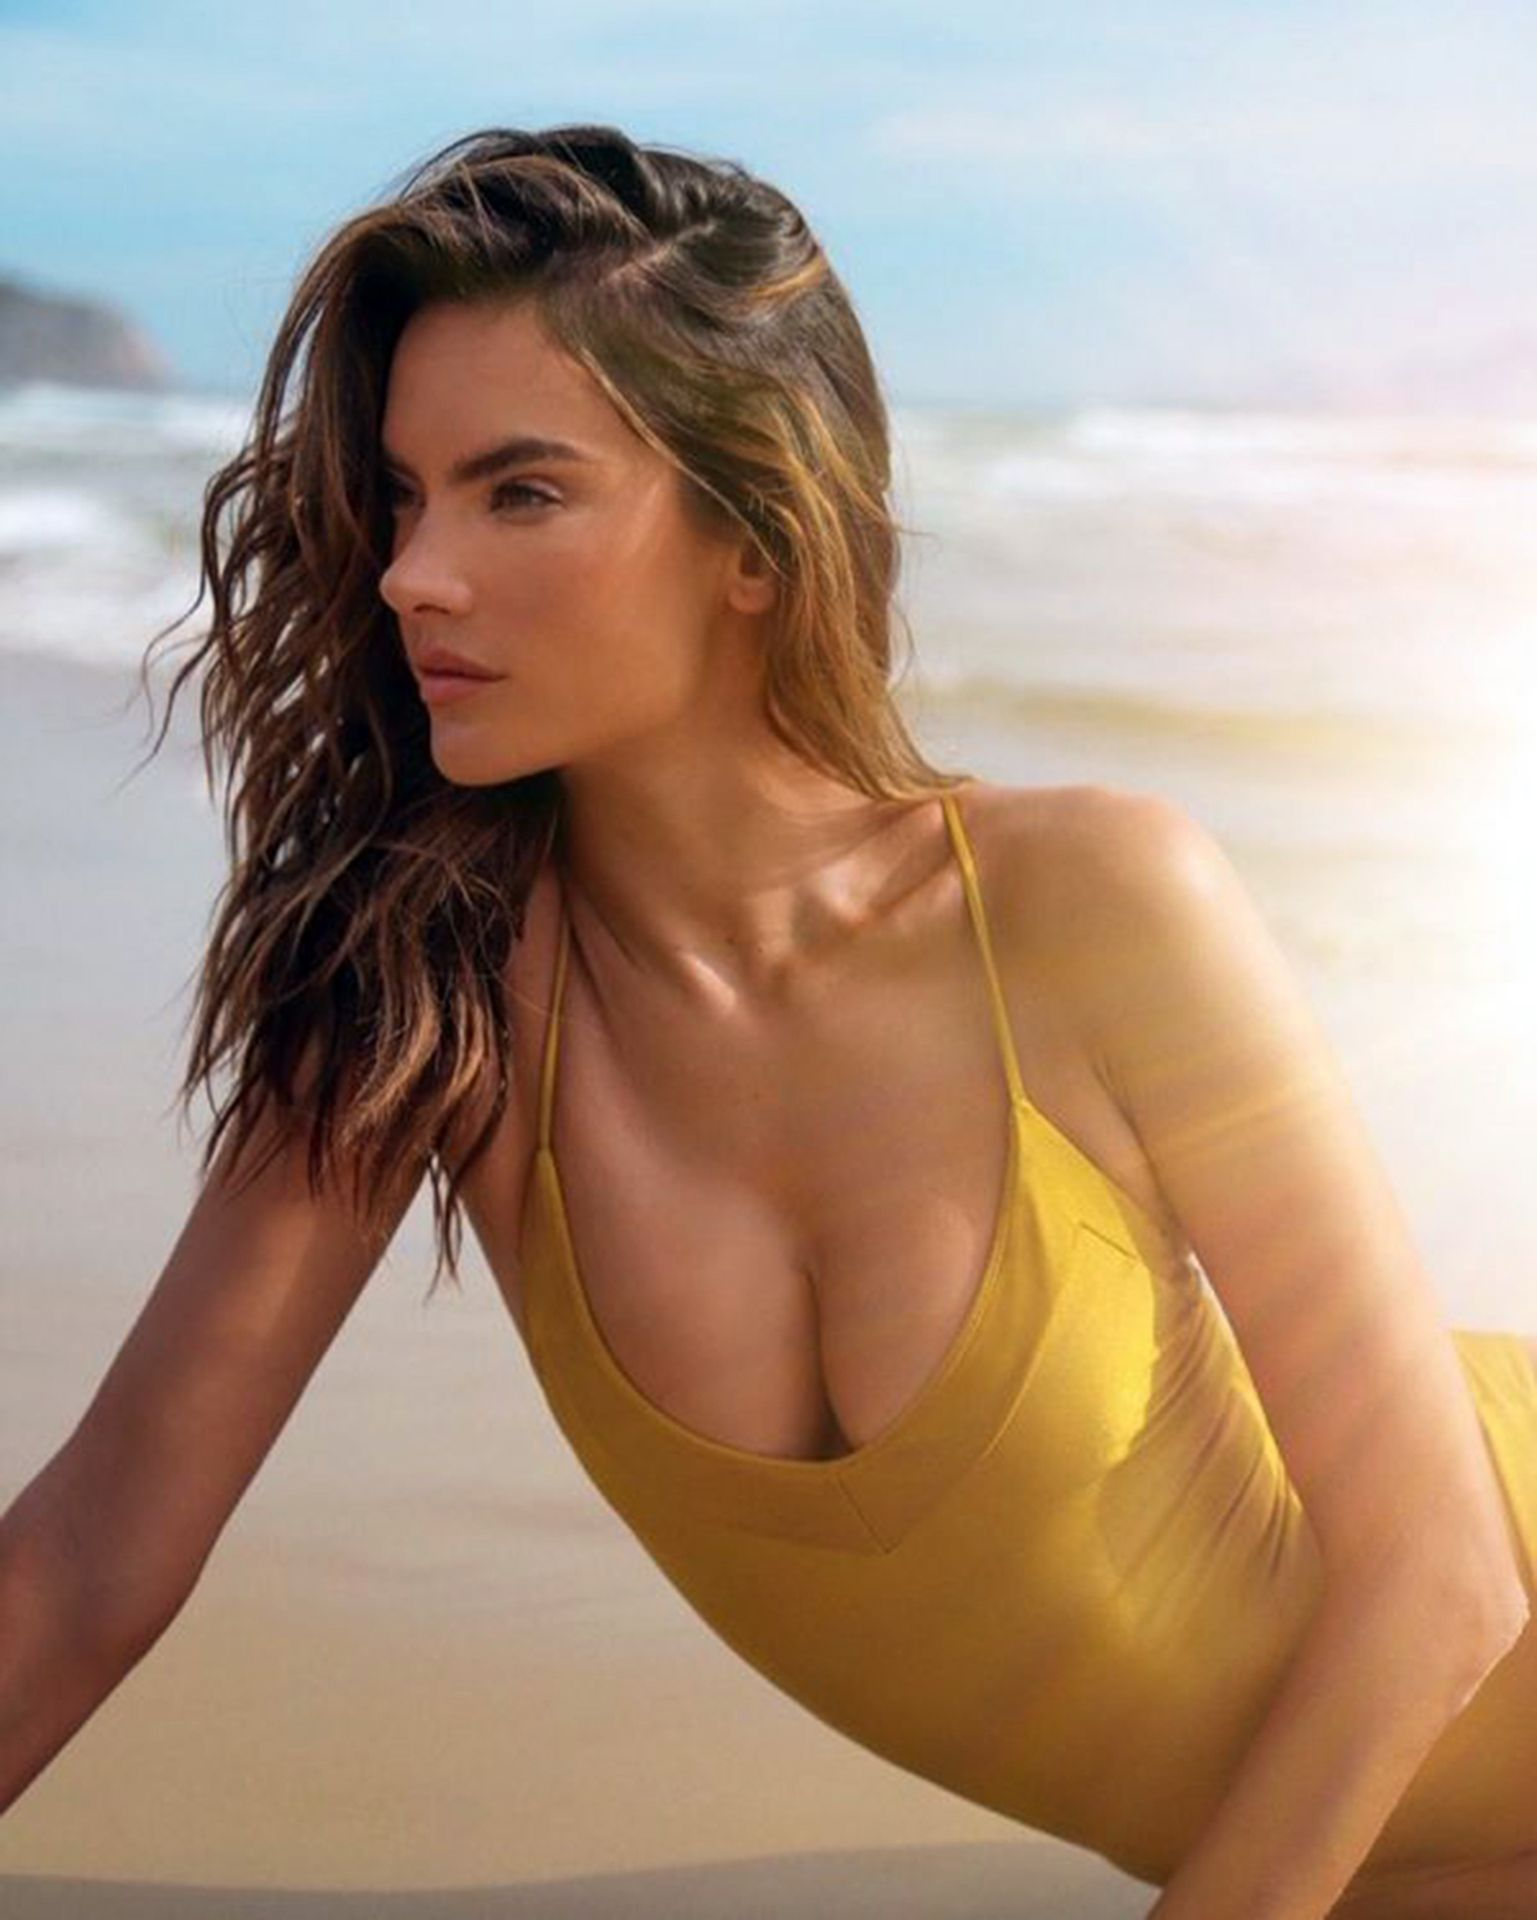 Alessandra Ambrosio Presents The New Campaign Of Her Brand Gal Floripa 0002